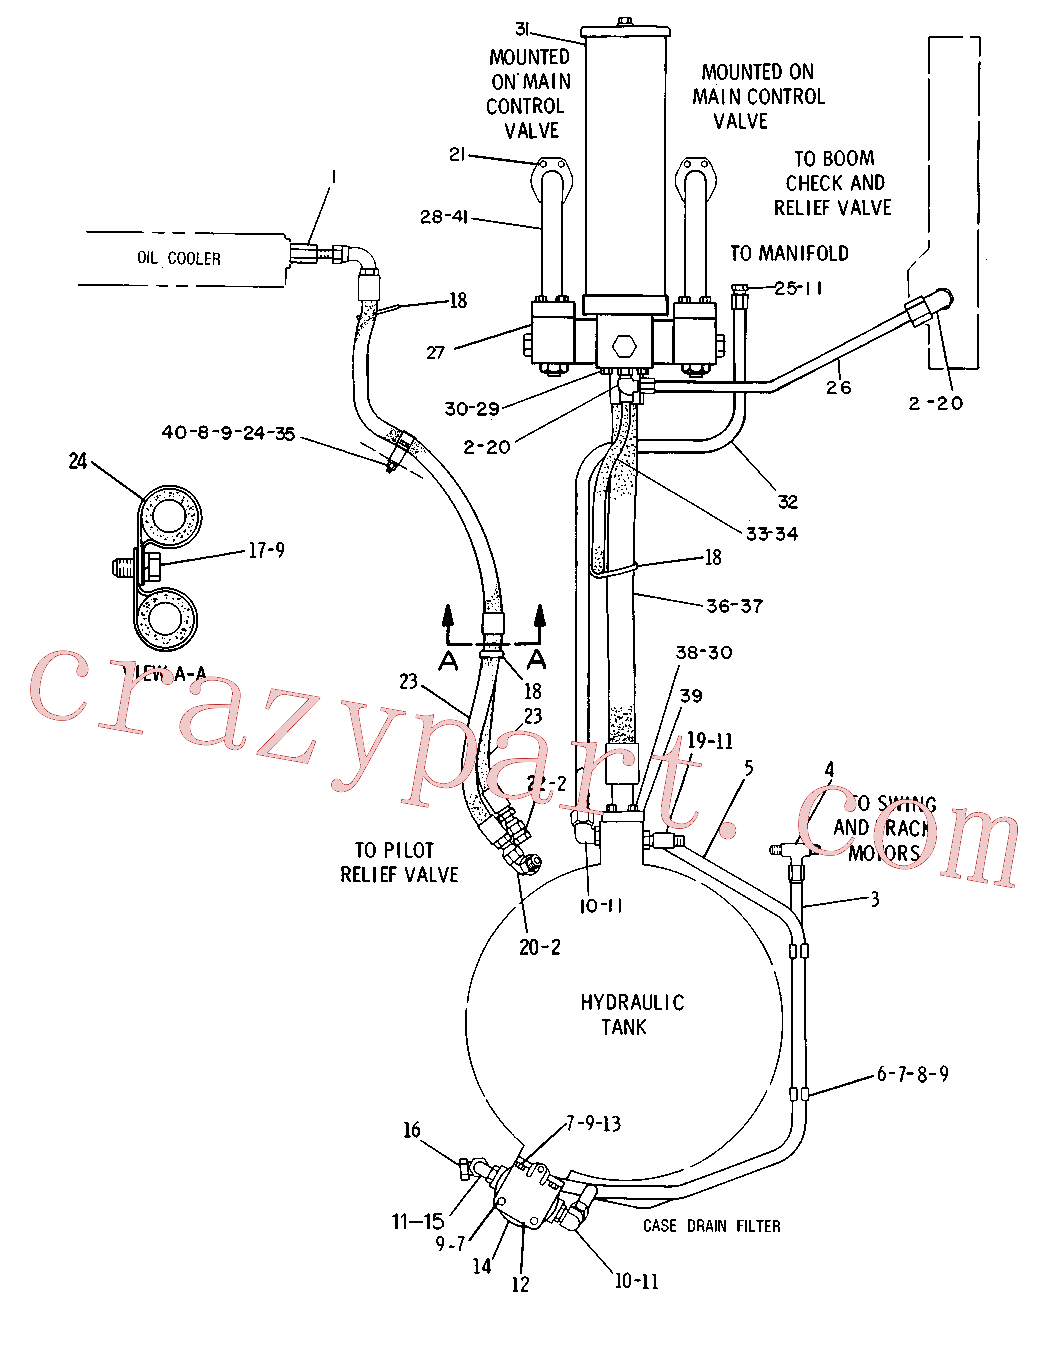 CAT 3G-8457 for 215 Excavator(EXC) hydraulic system 5C-0383 Assembly